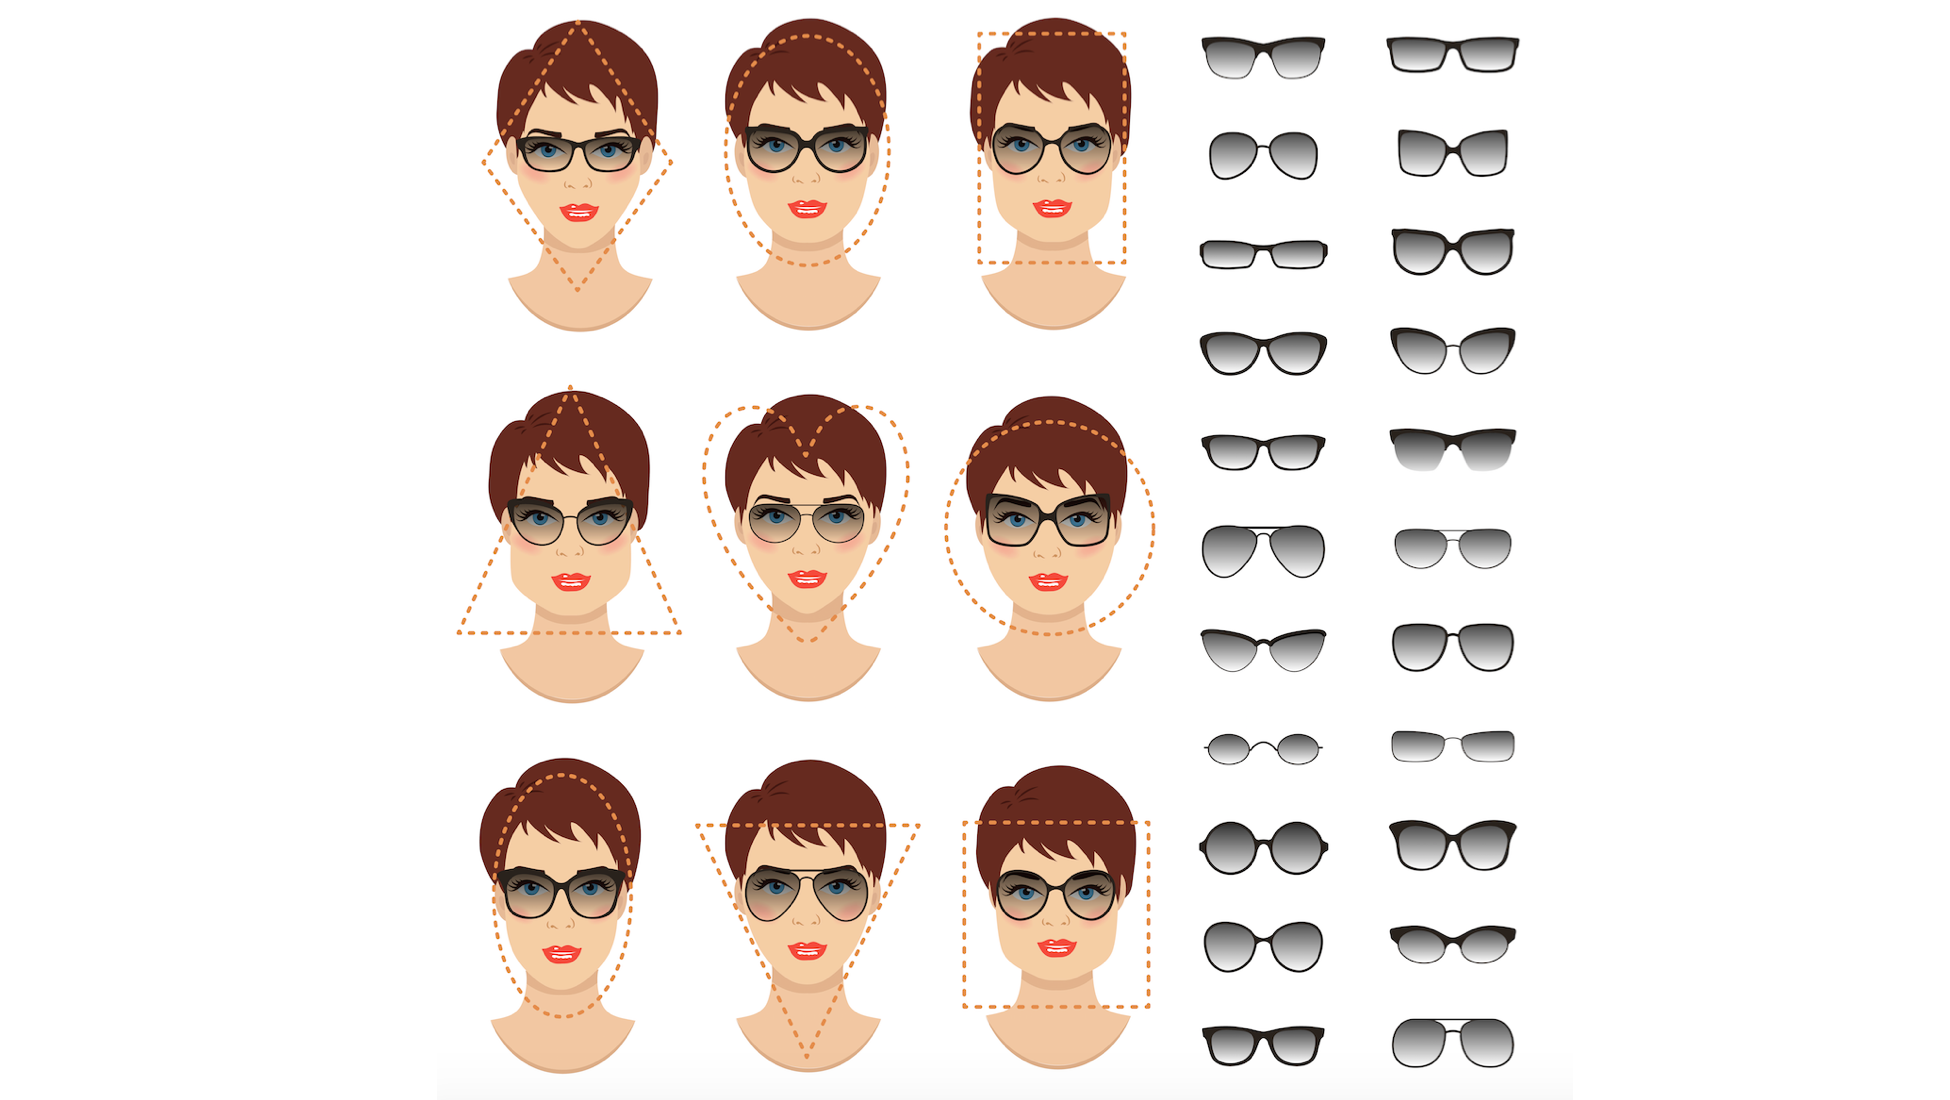 a936a26a9b Our in-house fashion expert put together this guide with some of her  suggestions for finding the perfect sunglasses to fit your face that you  can find at ...